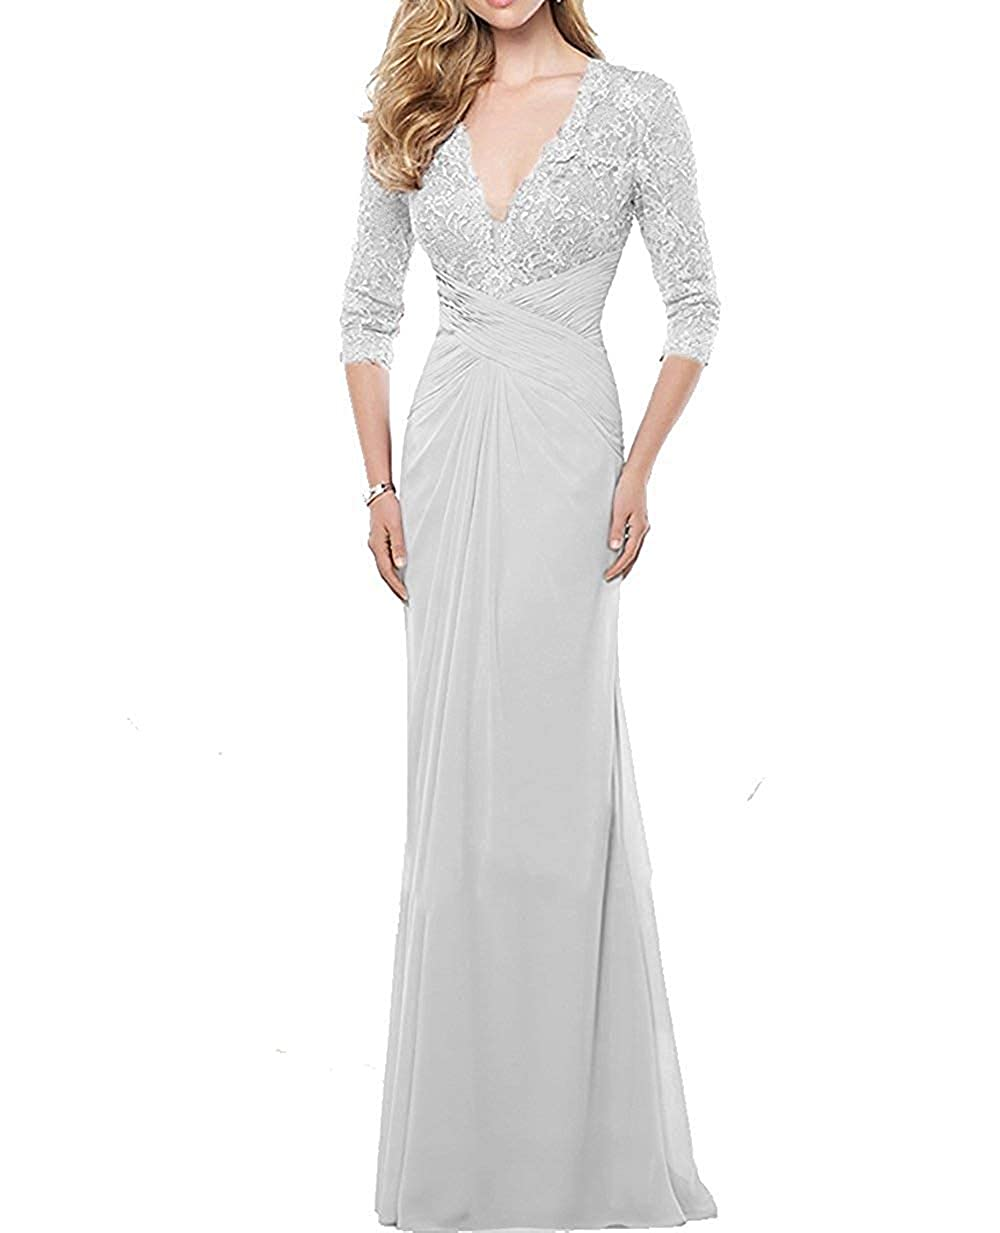 White Mother of The Bride Dresses with Long Sleeves Mothers Bride Dress Formal Gowns Evening Dresses